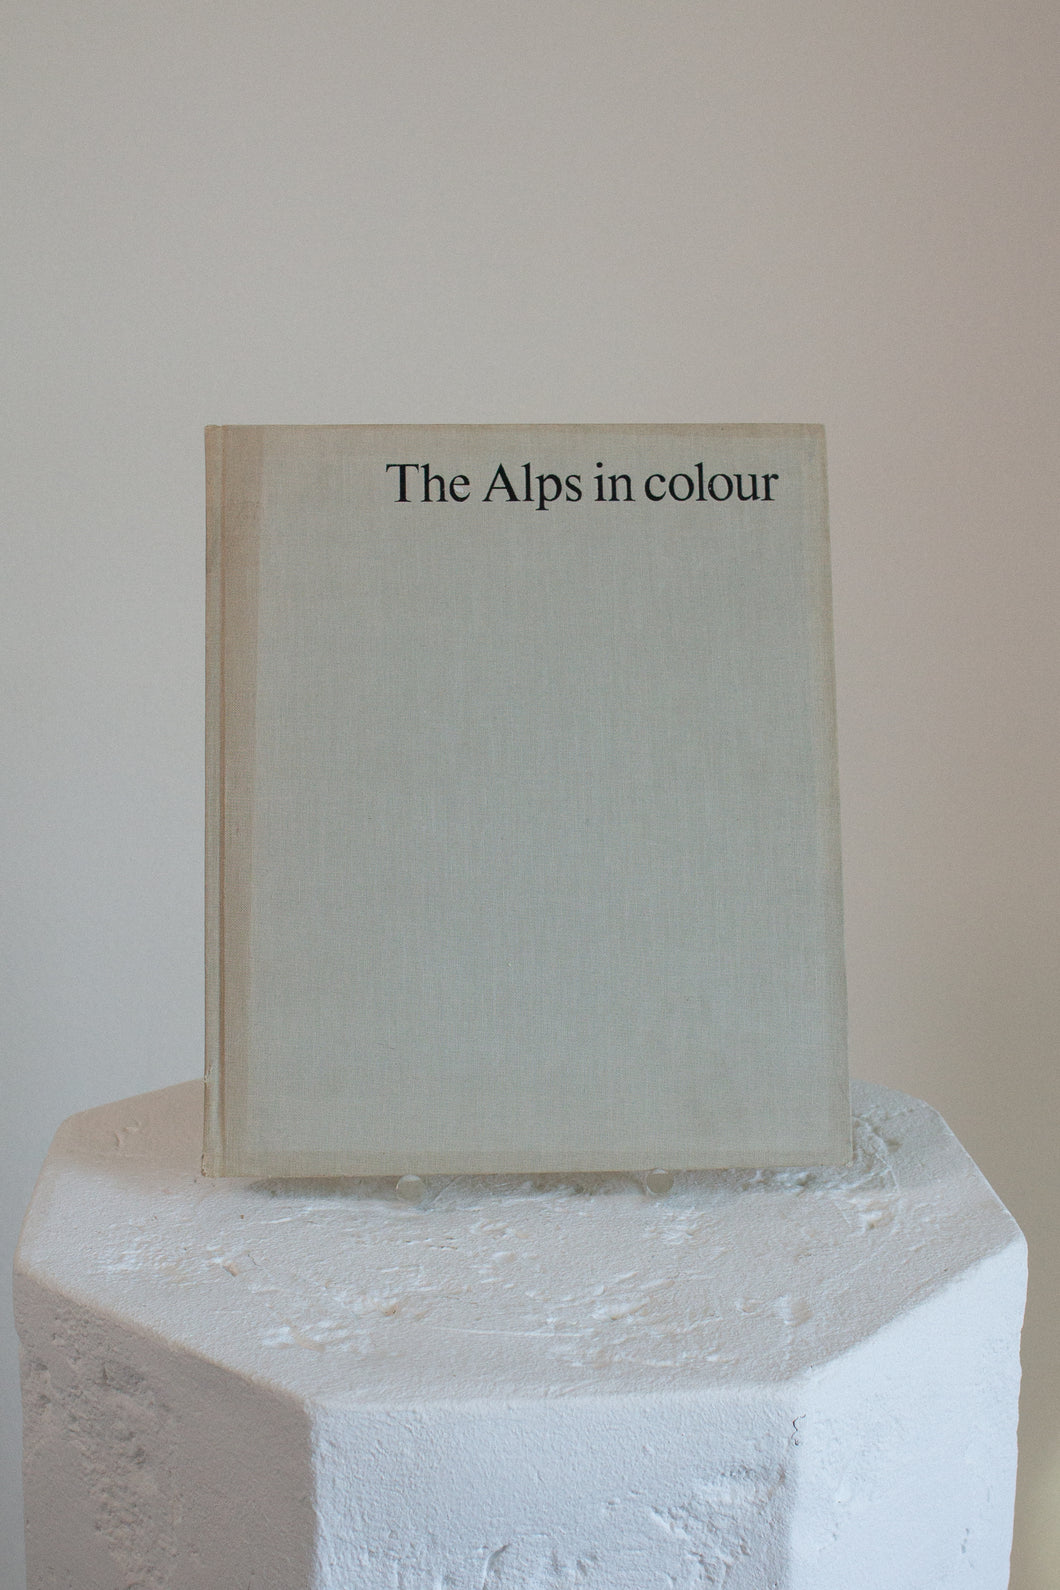 Vintage The Alps in Colour book (D312)